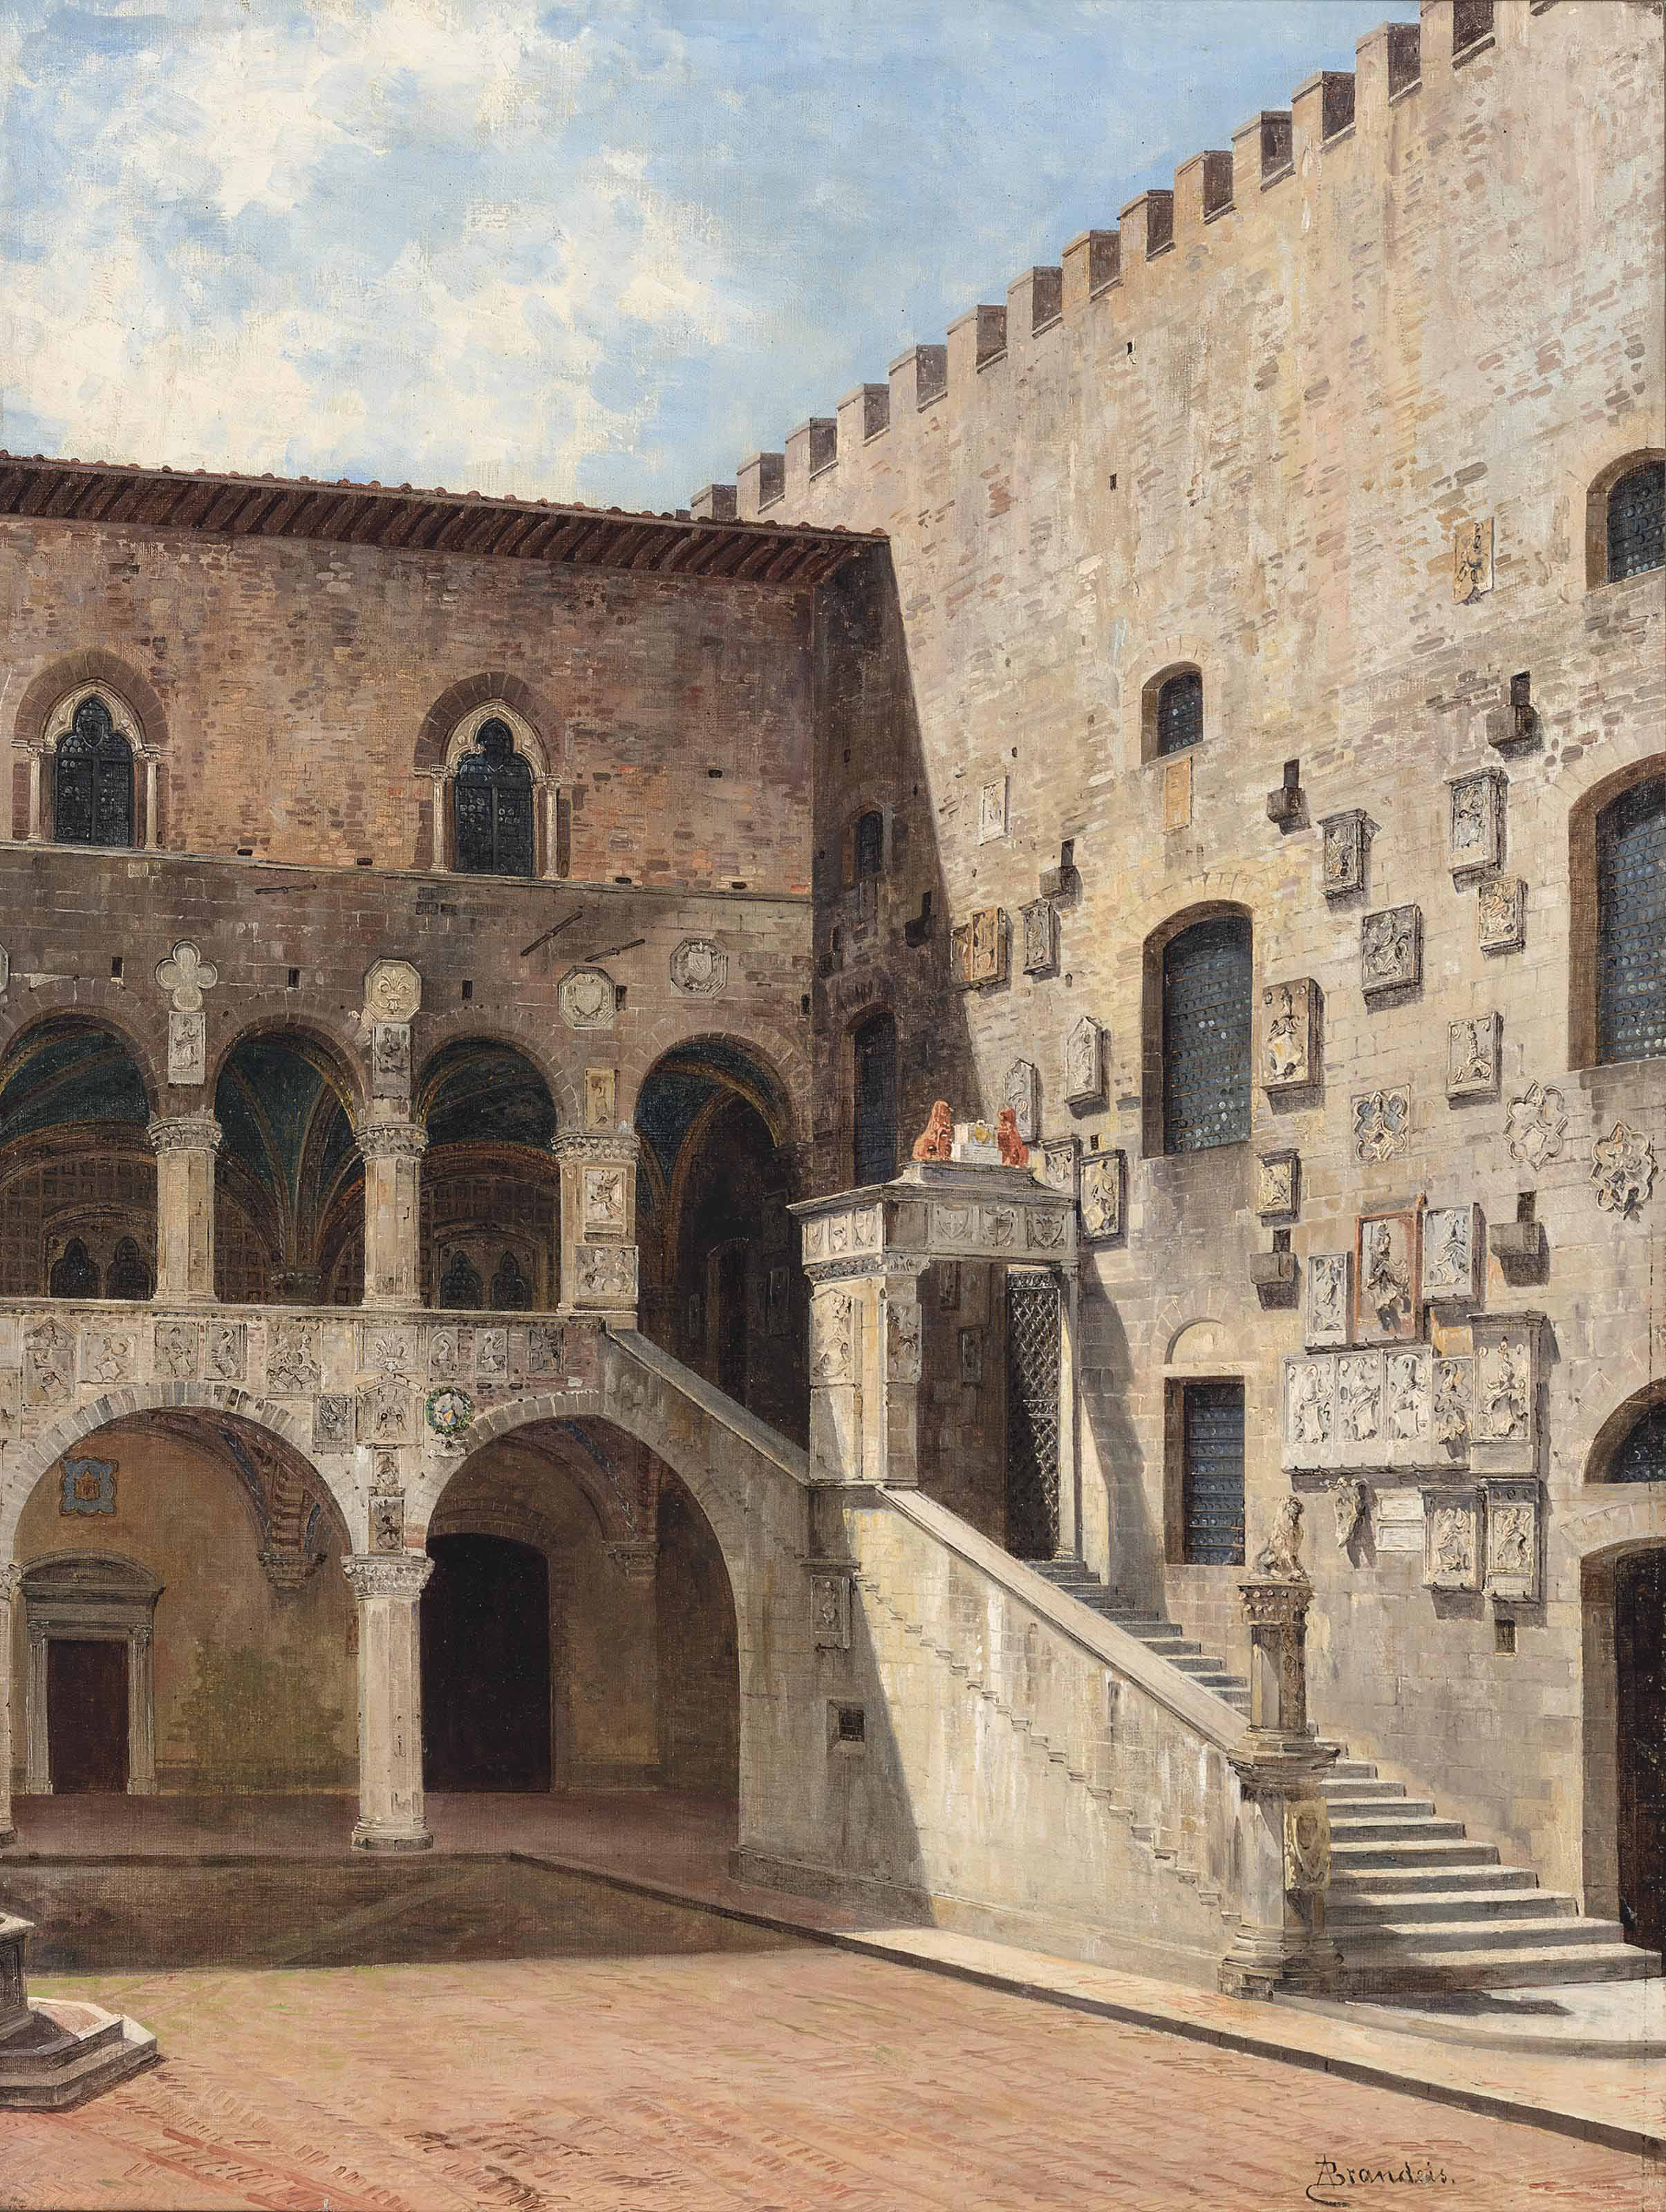 The courtyard at the Palazzo del Bargello, Florence